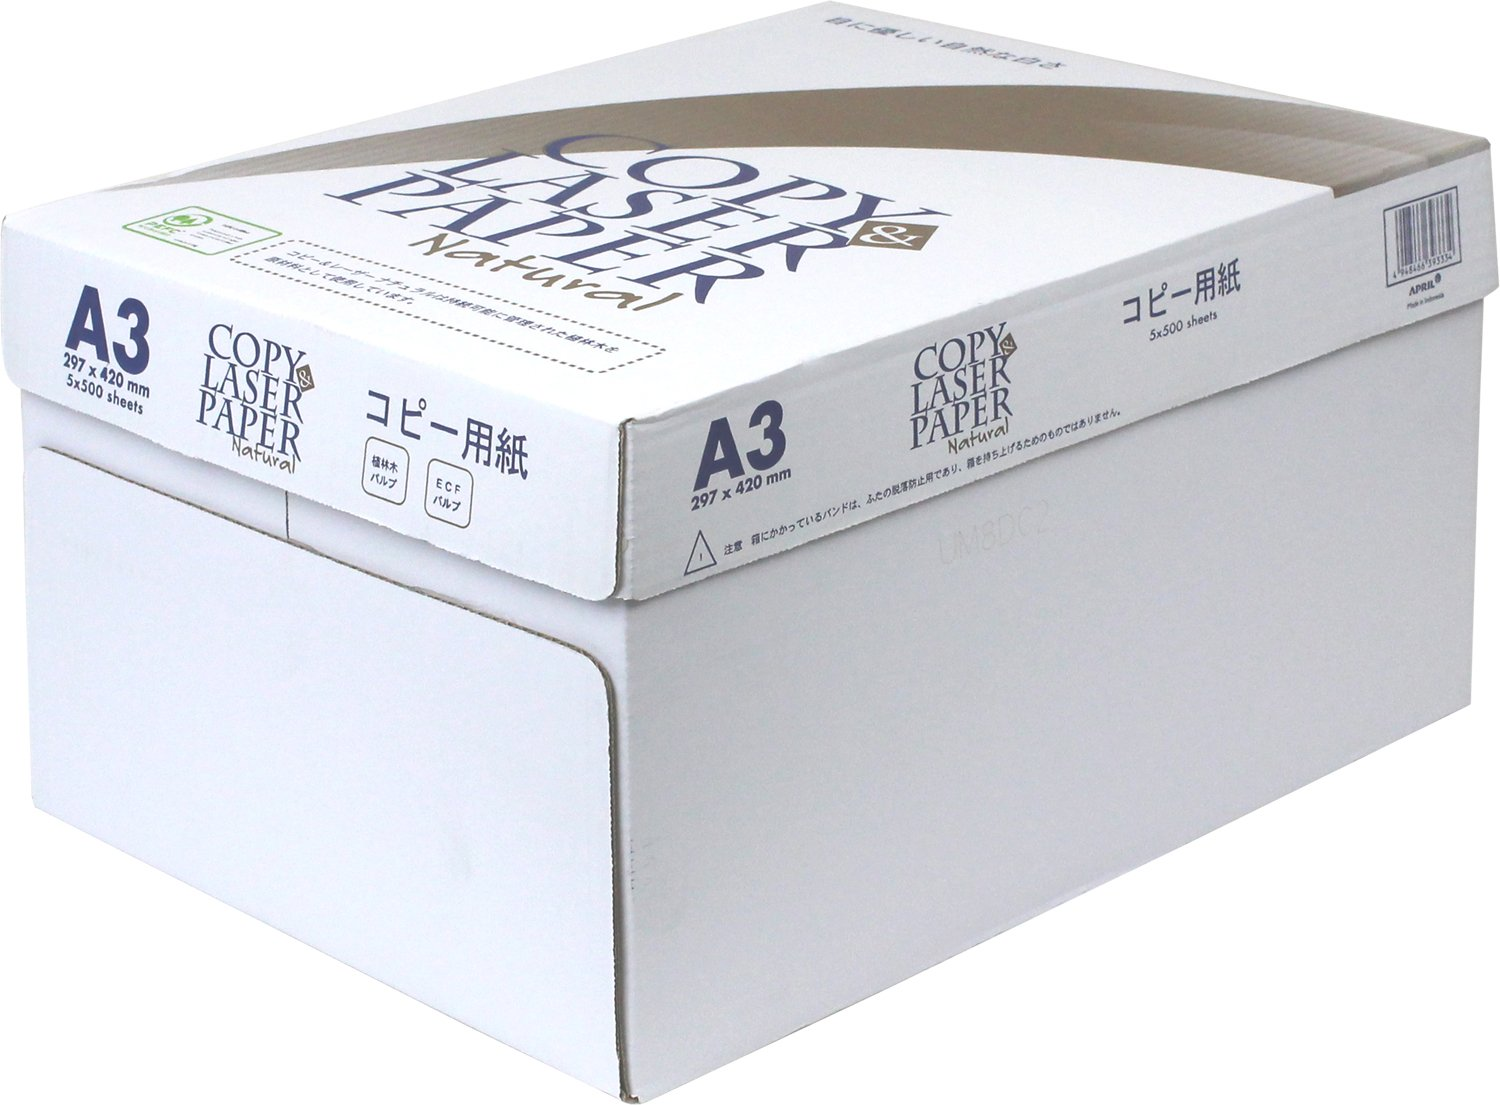 Japan Paper Products Copy Paper B4 Quality Multi Whiteness 98 Paper Thickness 0.106 Mm 2500 .. Business & Industrial